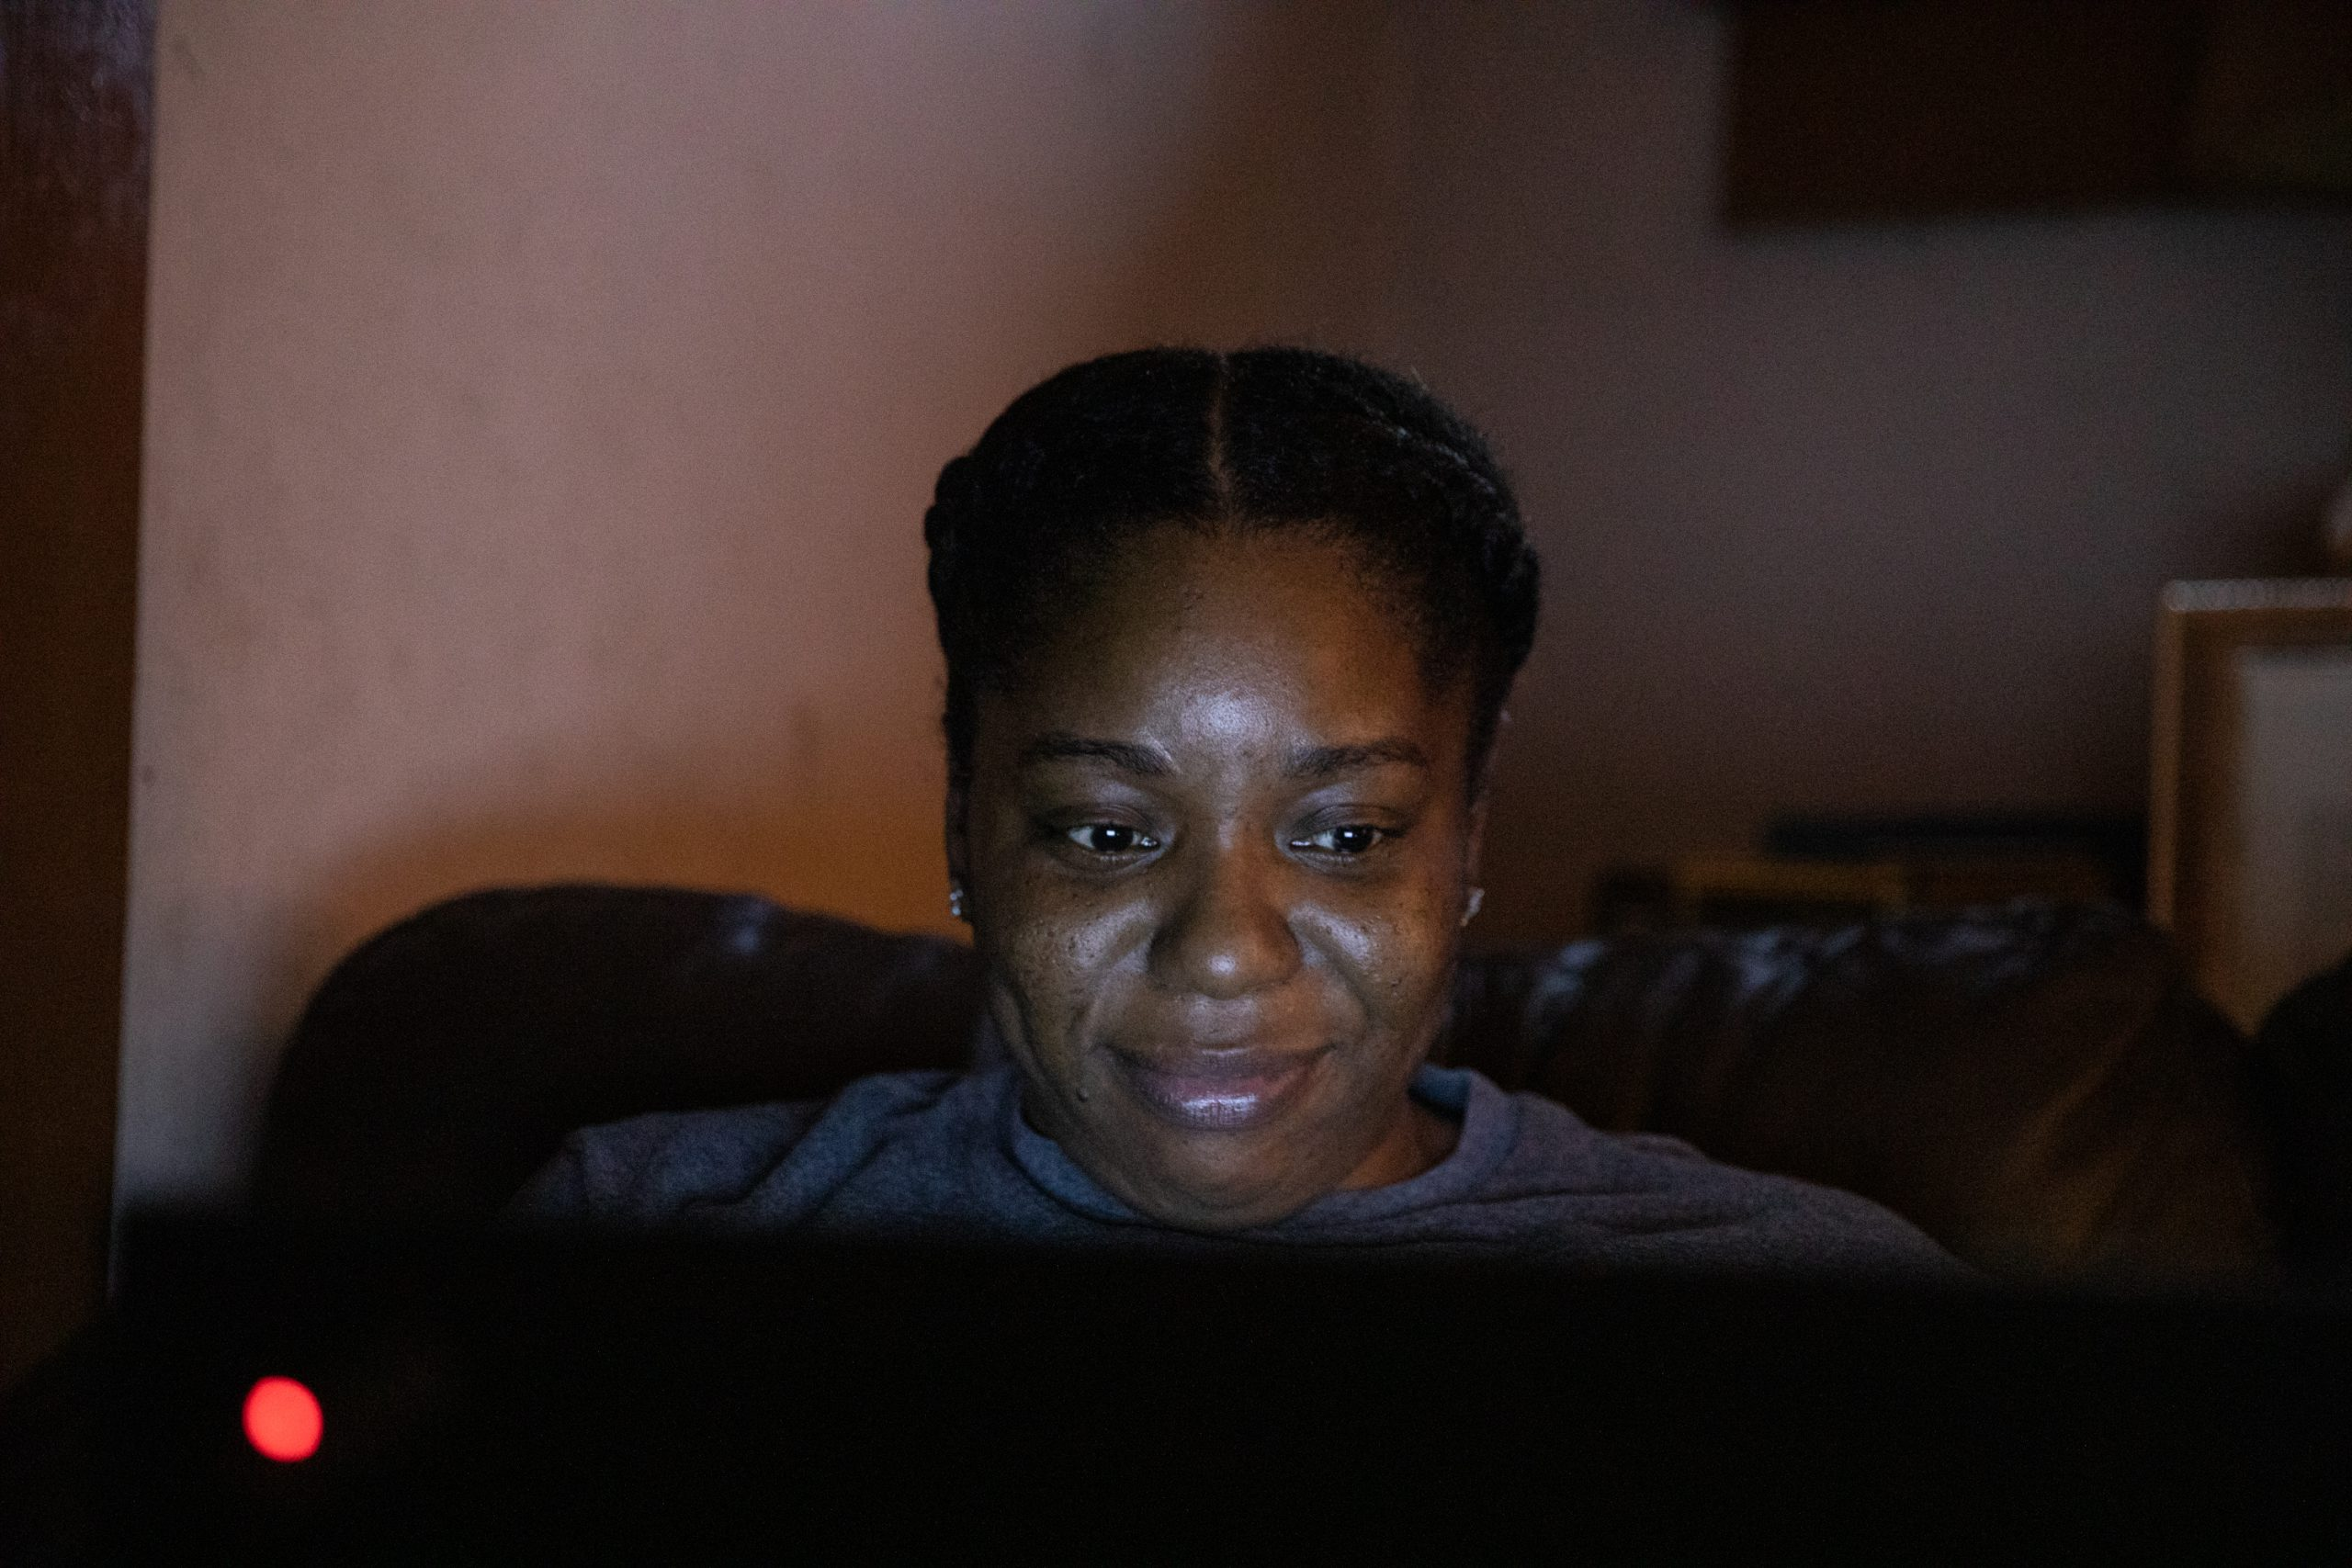 A woman smiles at her laptop